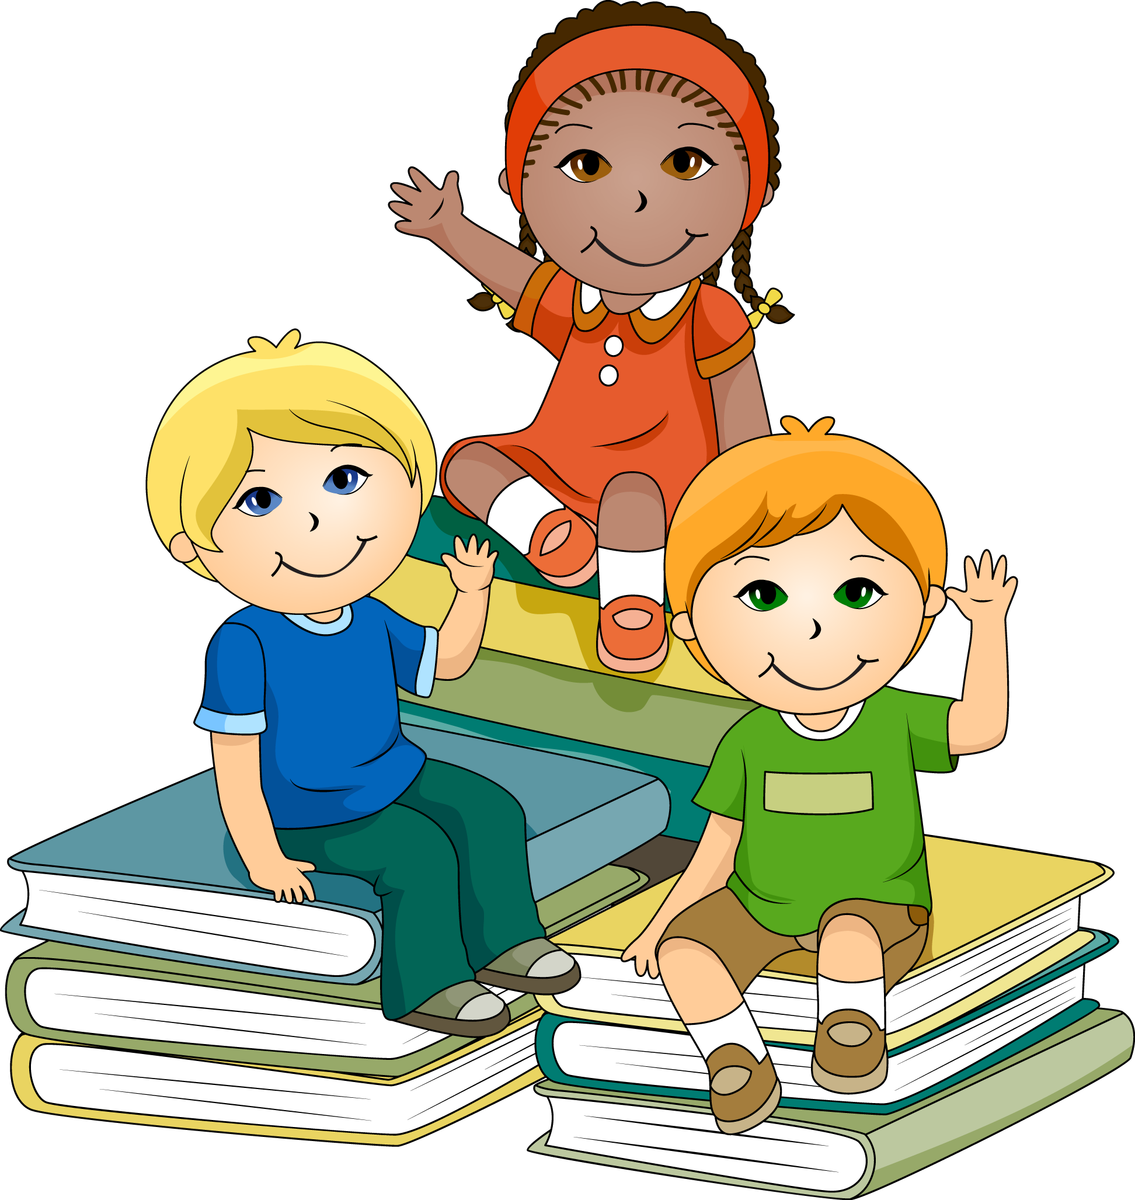 royalty free download Our curriculum is the. Kids not sharing clipart